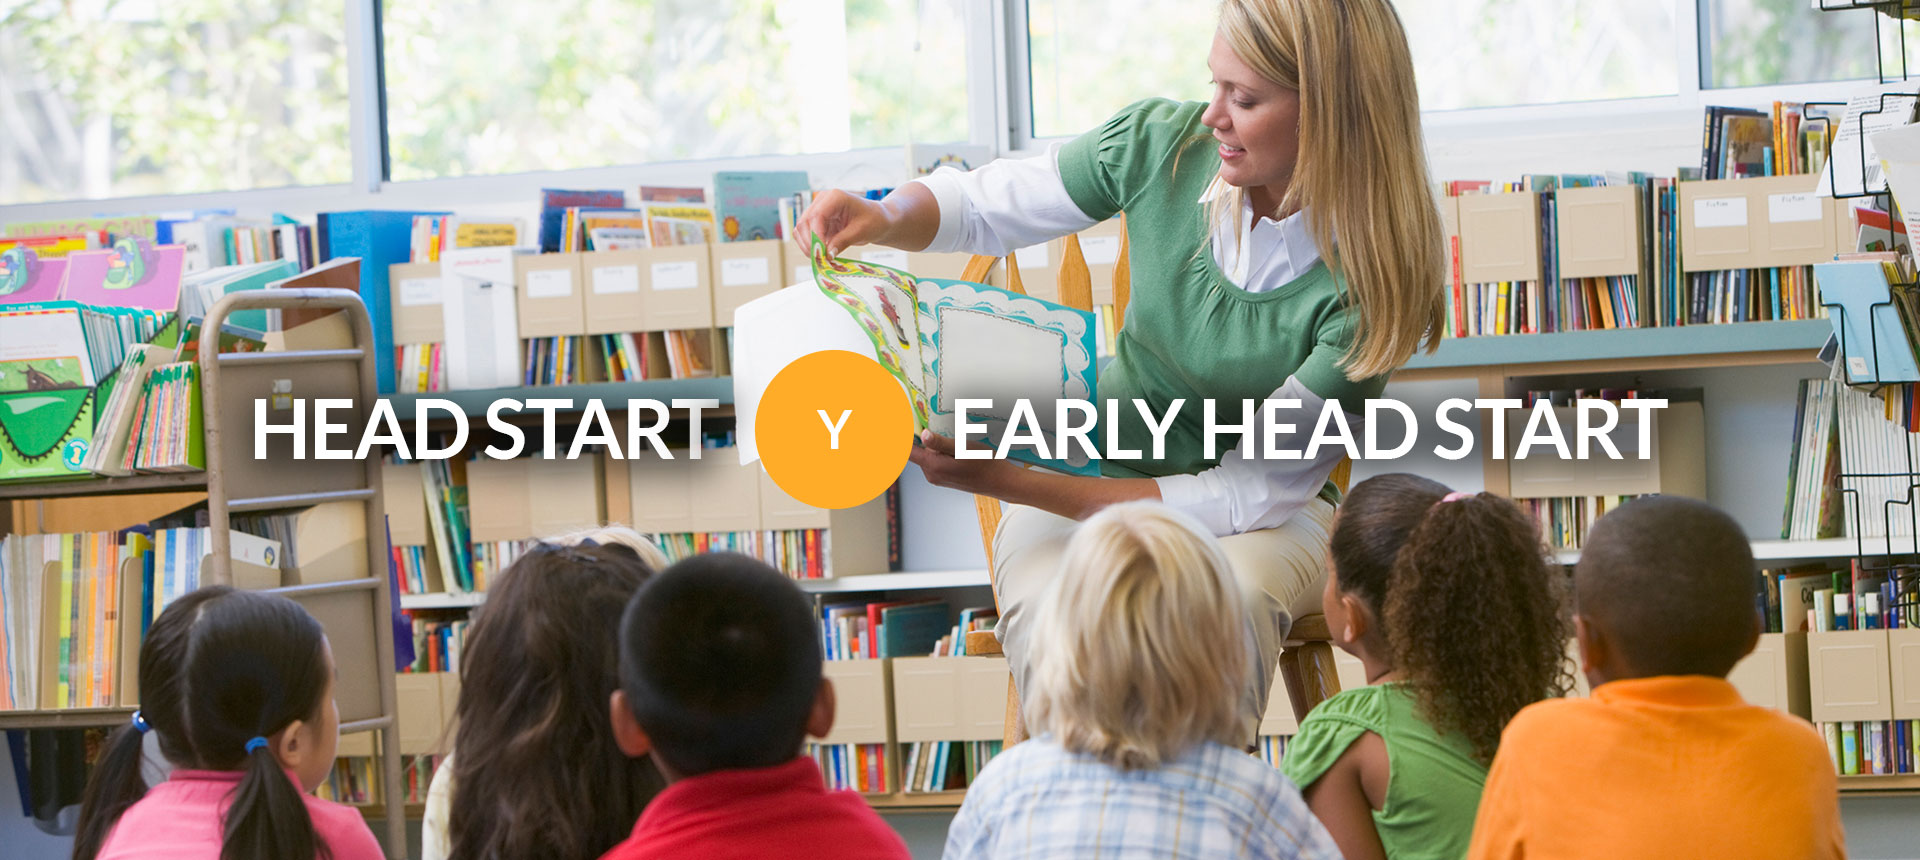 Head Start y Early Head Start